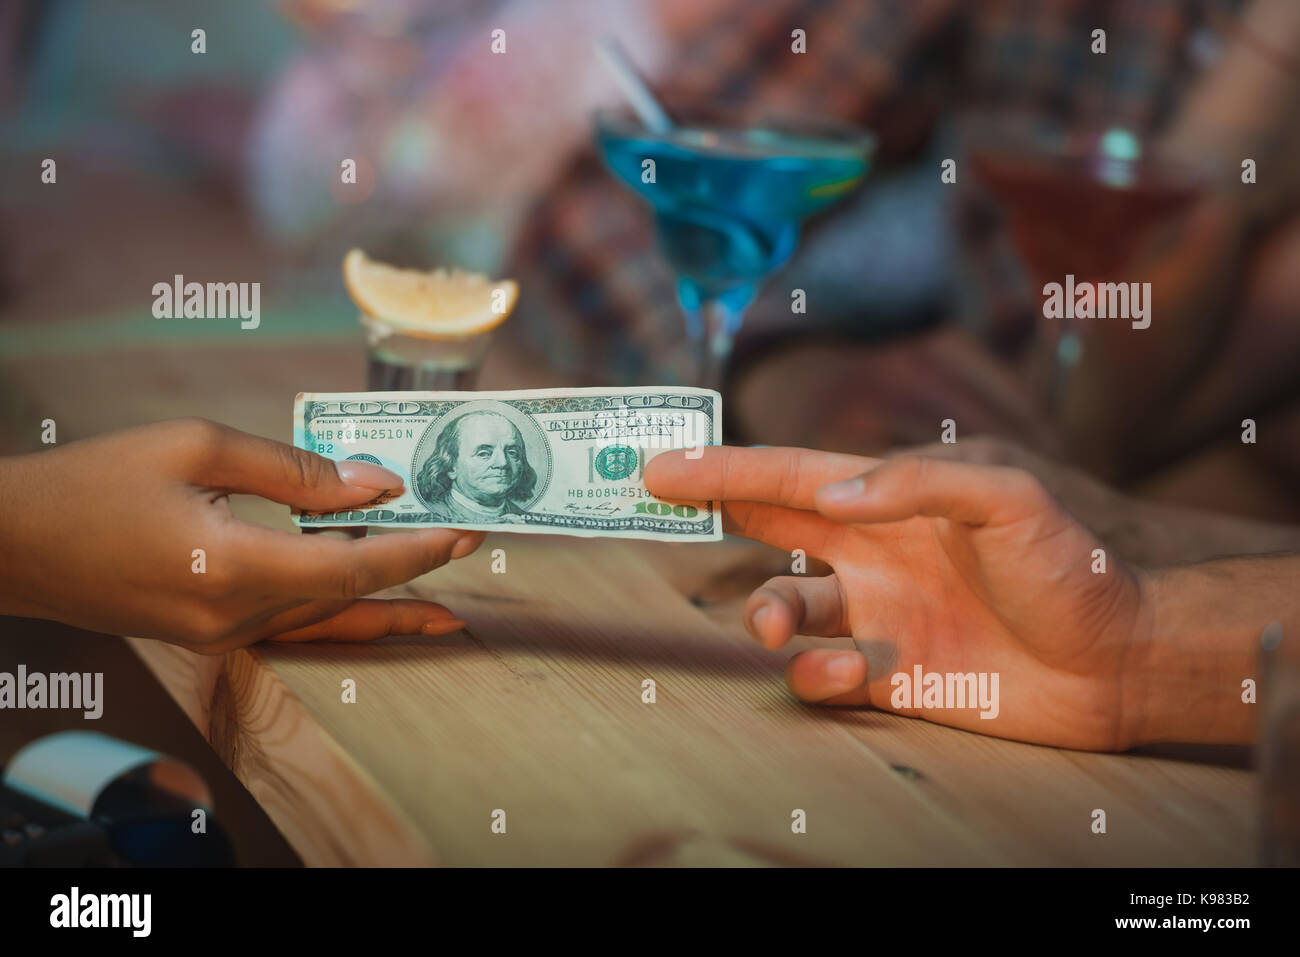 man paying barman for cocktails - Stock Image